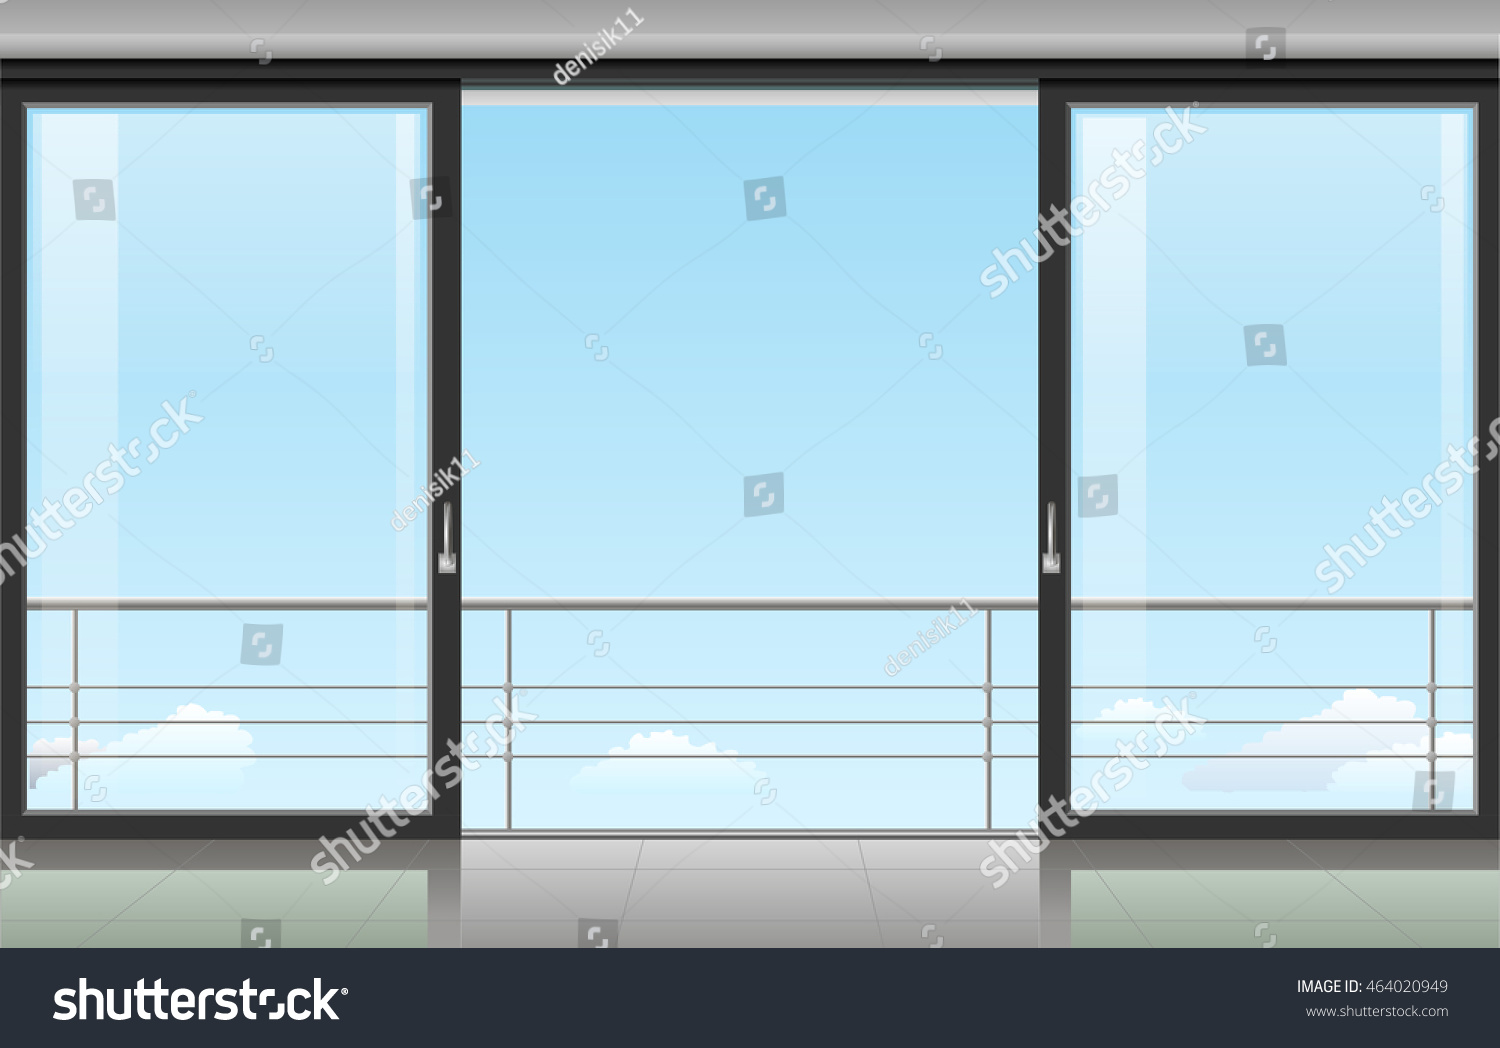 The wall at home or with a sliding door and overlooking the sky Vector illustration